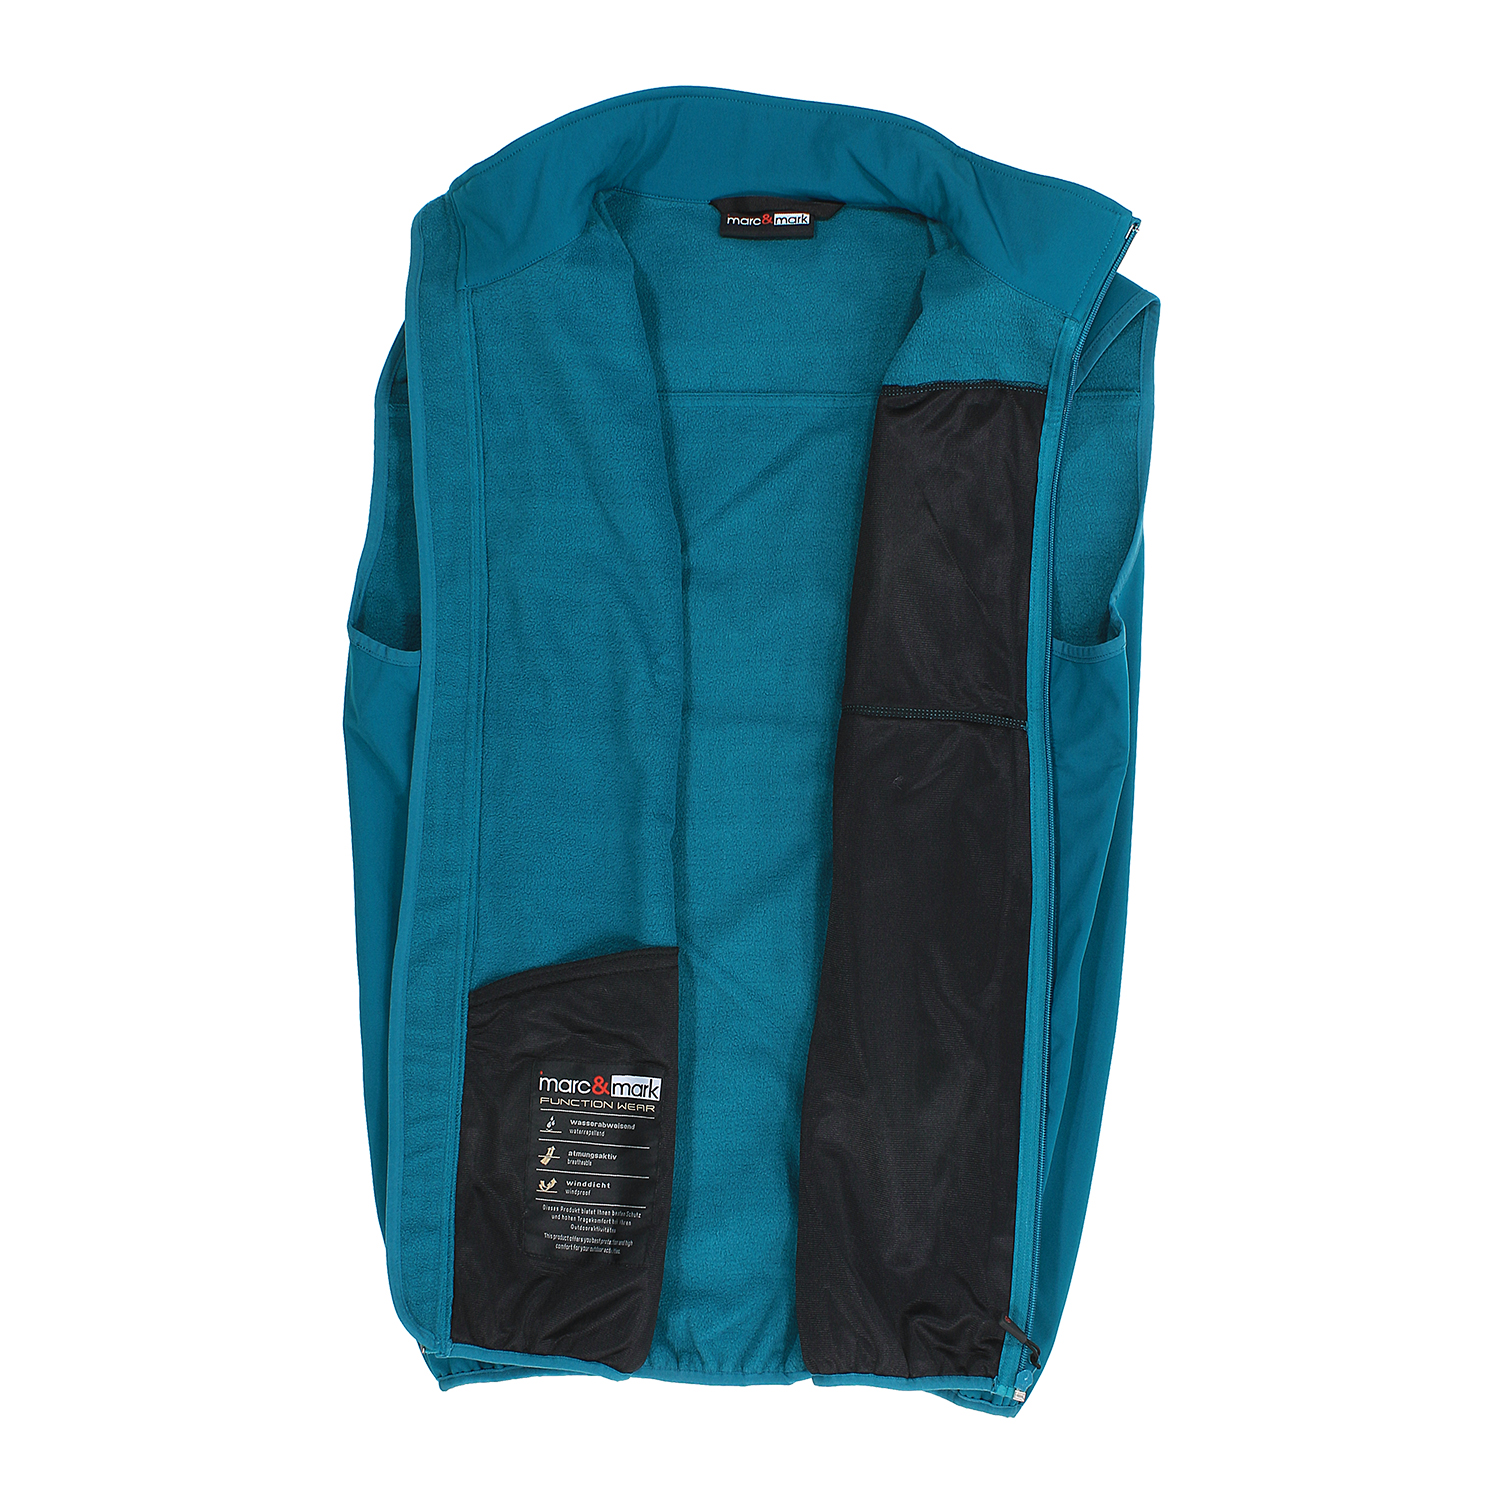 Detail Image to Softshell vest in petrol by marc&mark in plus sizes up to 10XL